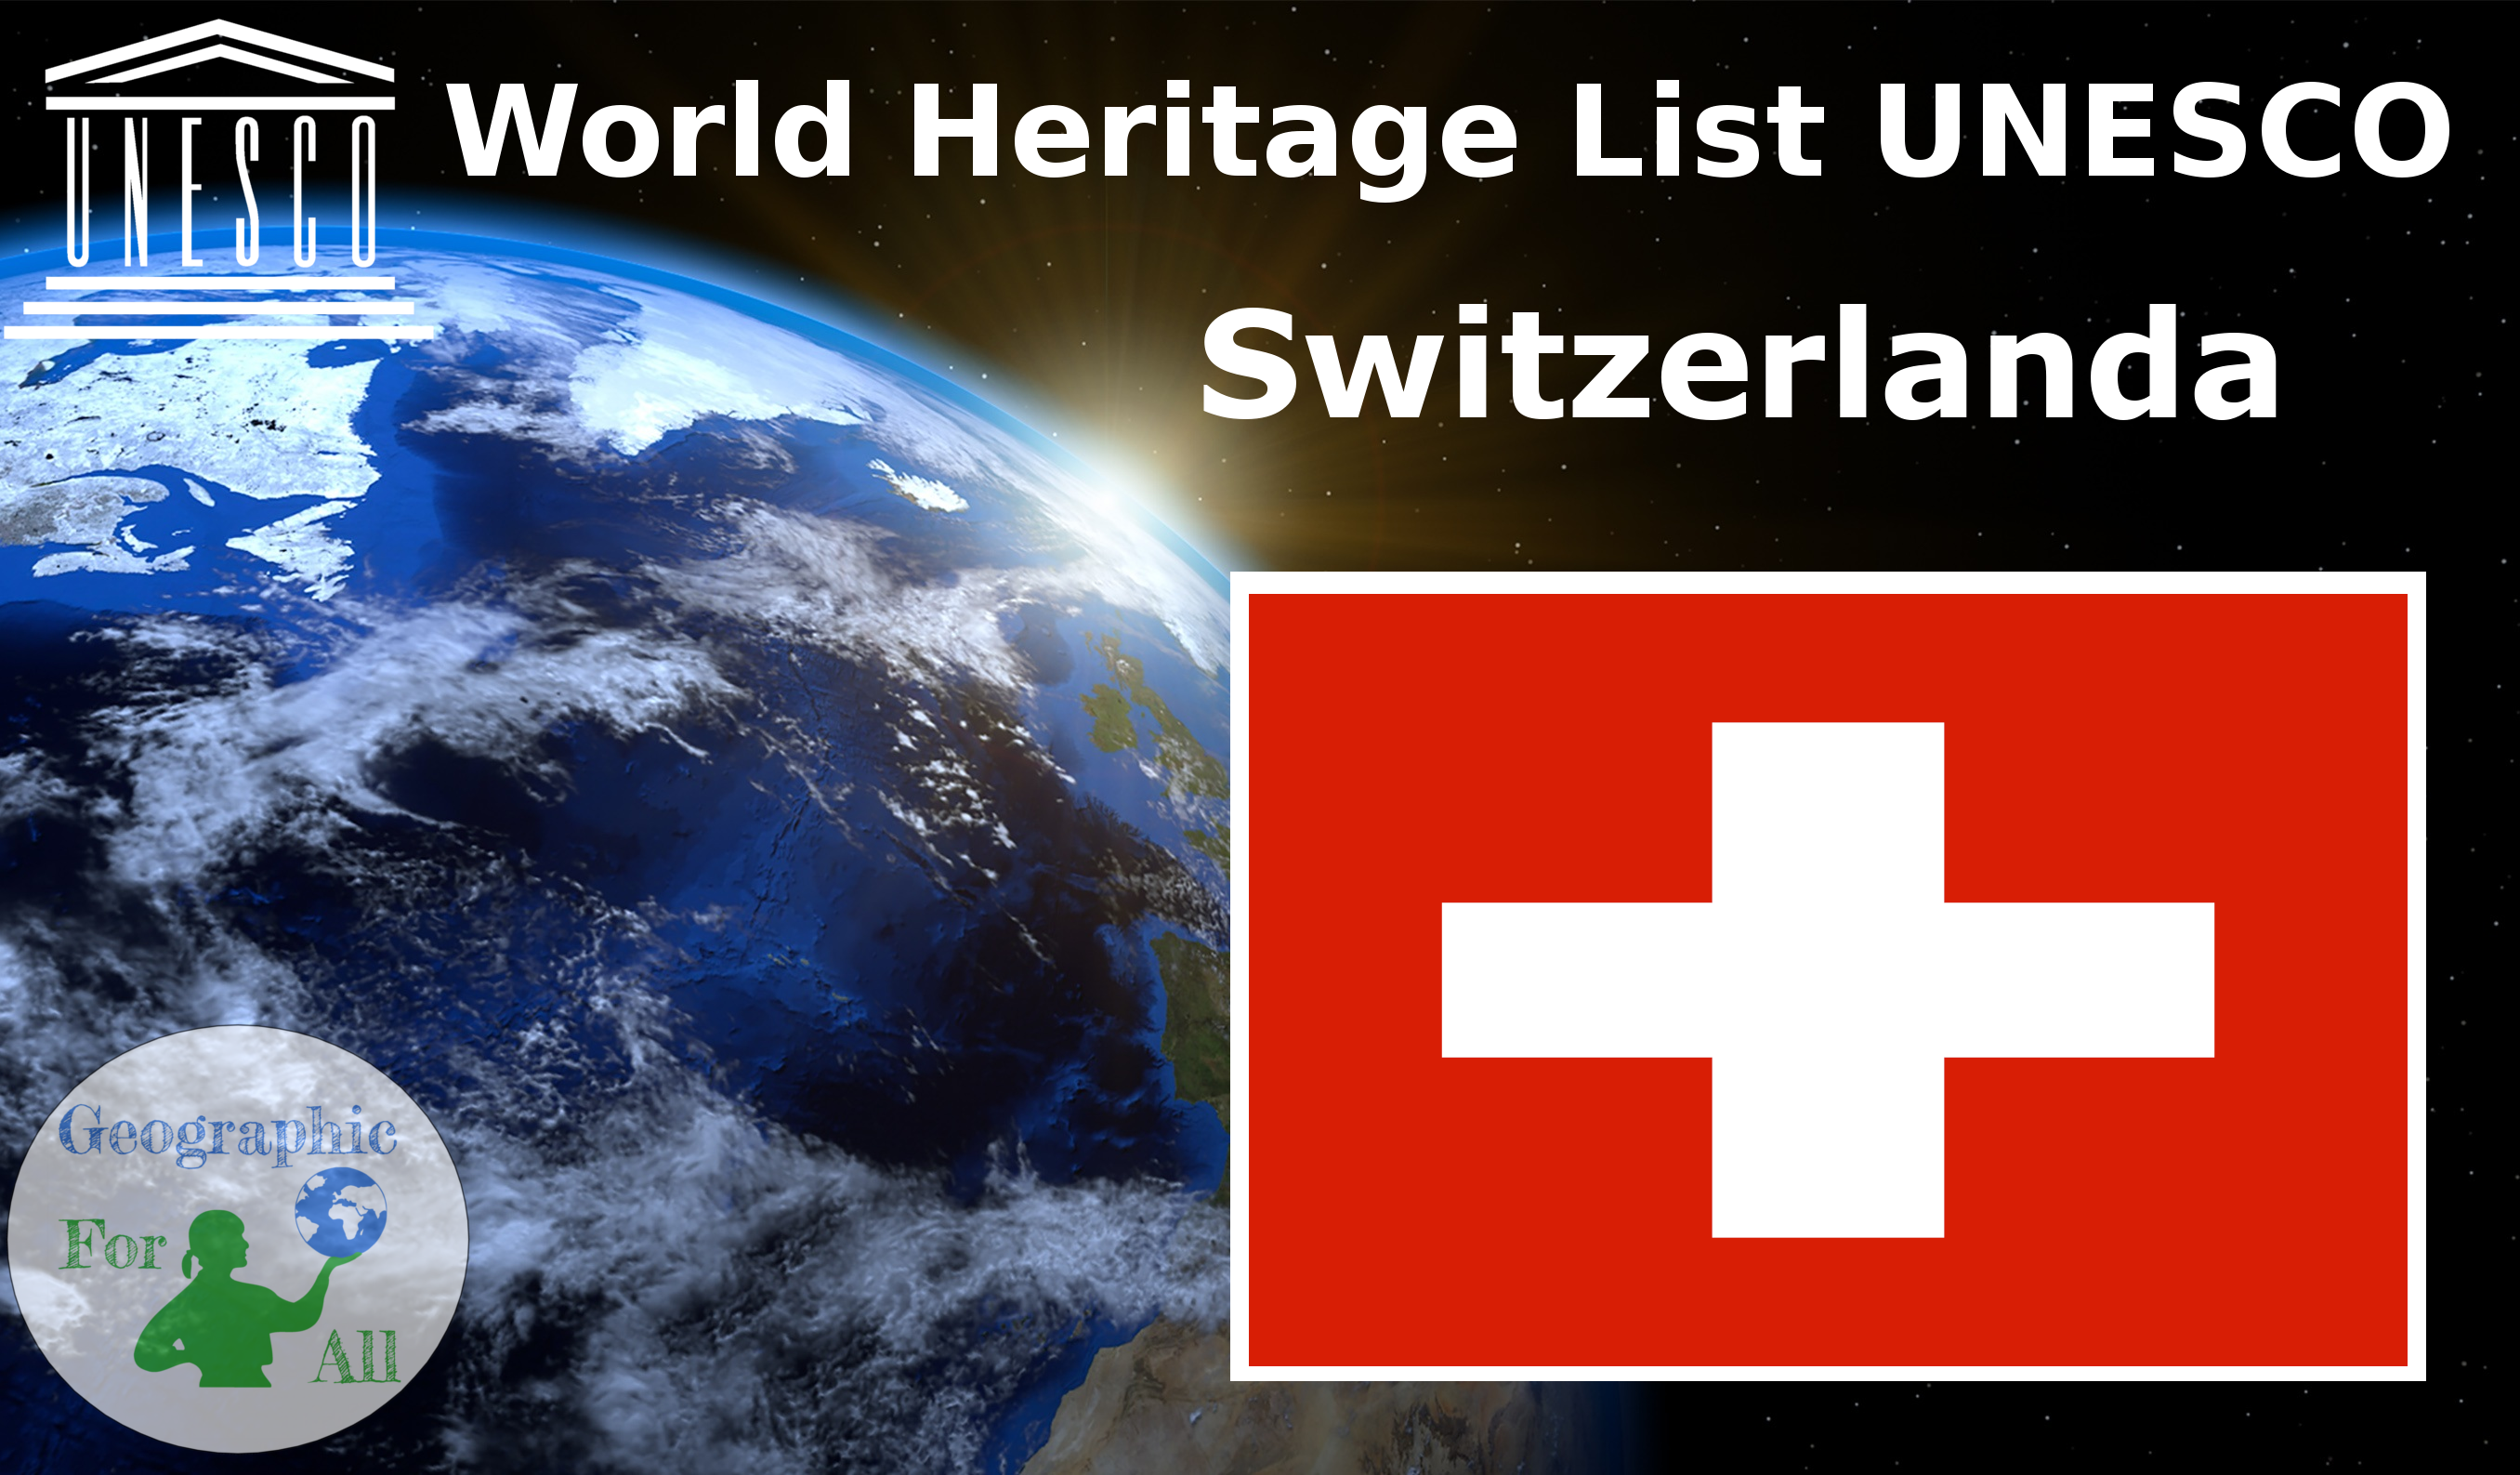 World Heritage List UNESCO - Switzerland